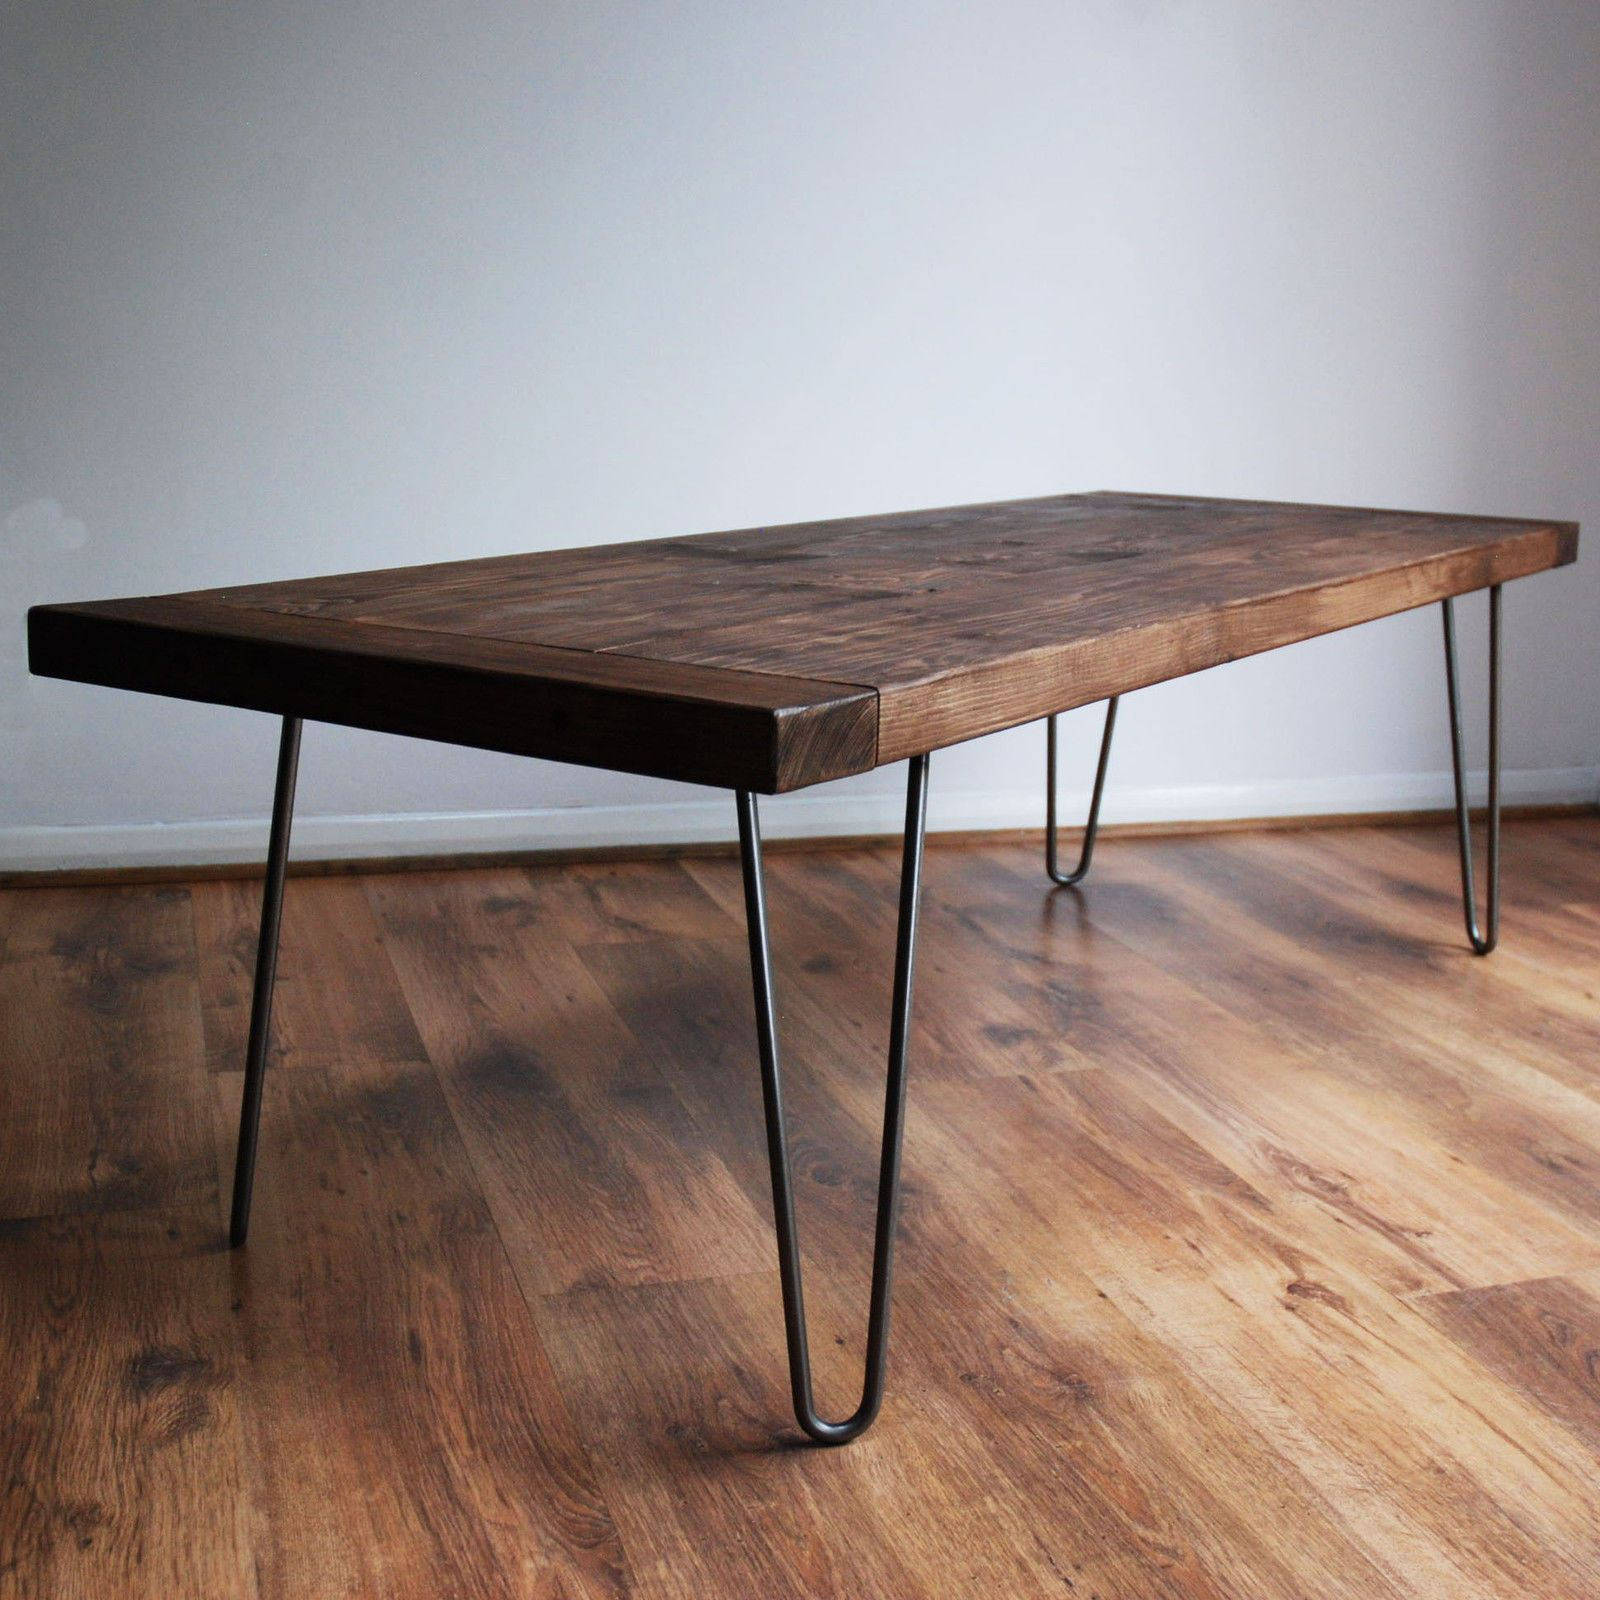 Rustic Coffee Table With Vintage Mid Century Metal Hairpin Legs Walnut Detail I Midcentury Modern Dining Table Rustic Coffee Tables Mid Century Dining Table